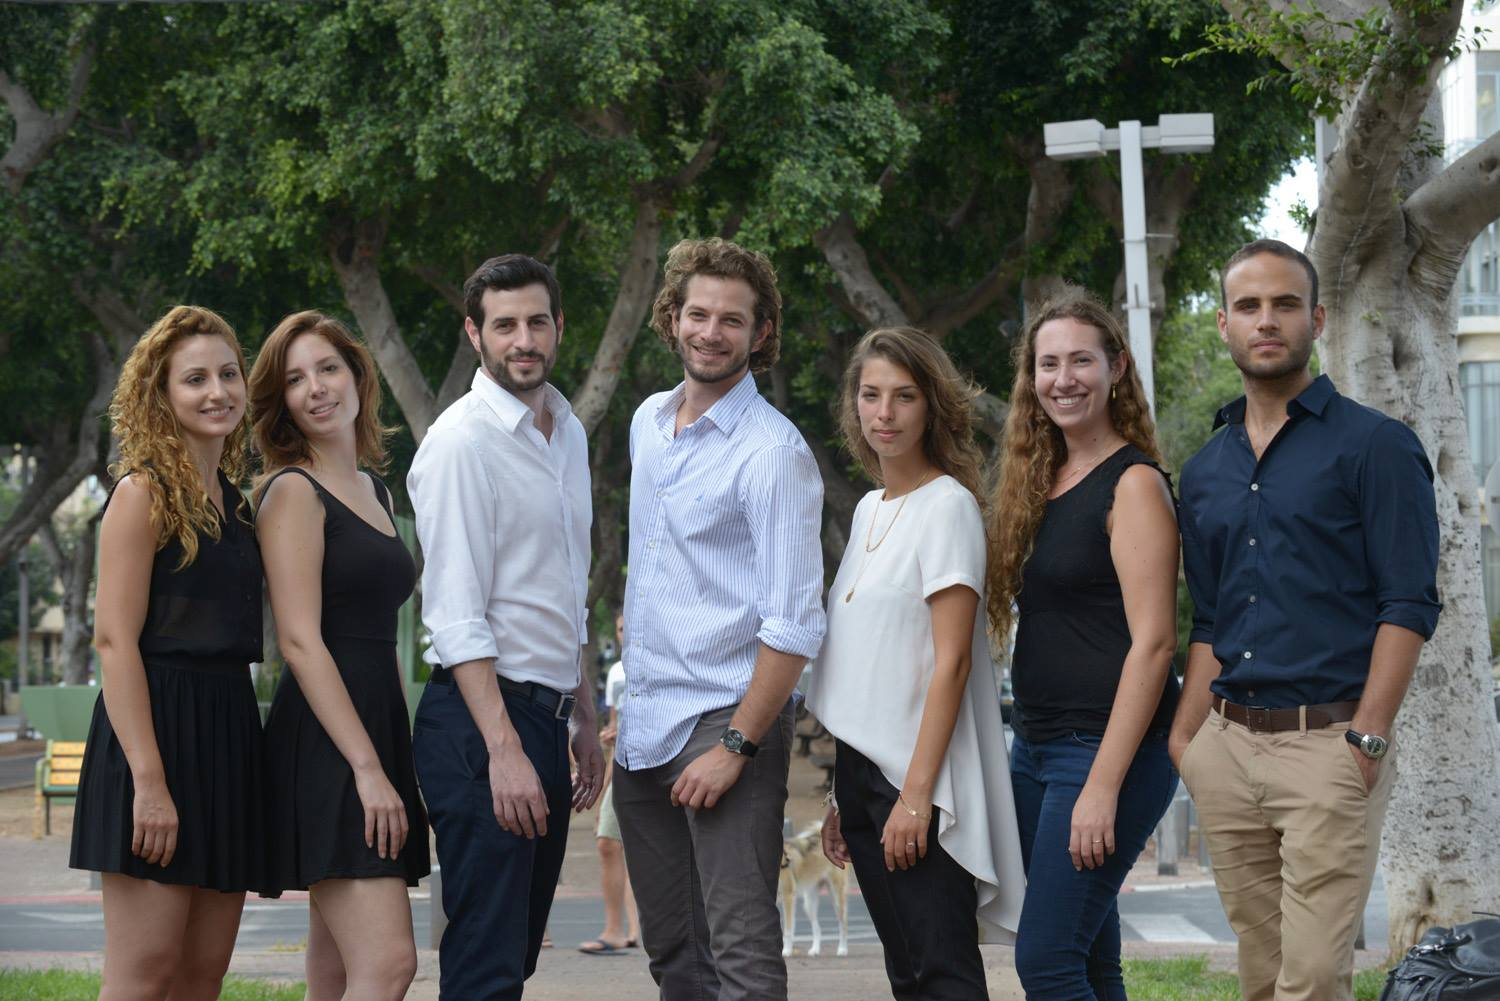 Noah Initiative's team, from left - Elinor Zagori, Noa Ben Aharon, Omer Schloss, Ben Topor, Noa Tasman, Gali Froind and Eyal Taubman. Photo courtesy